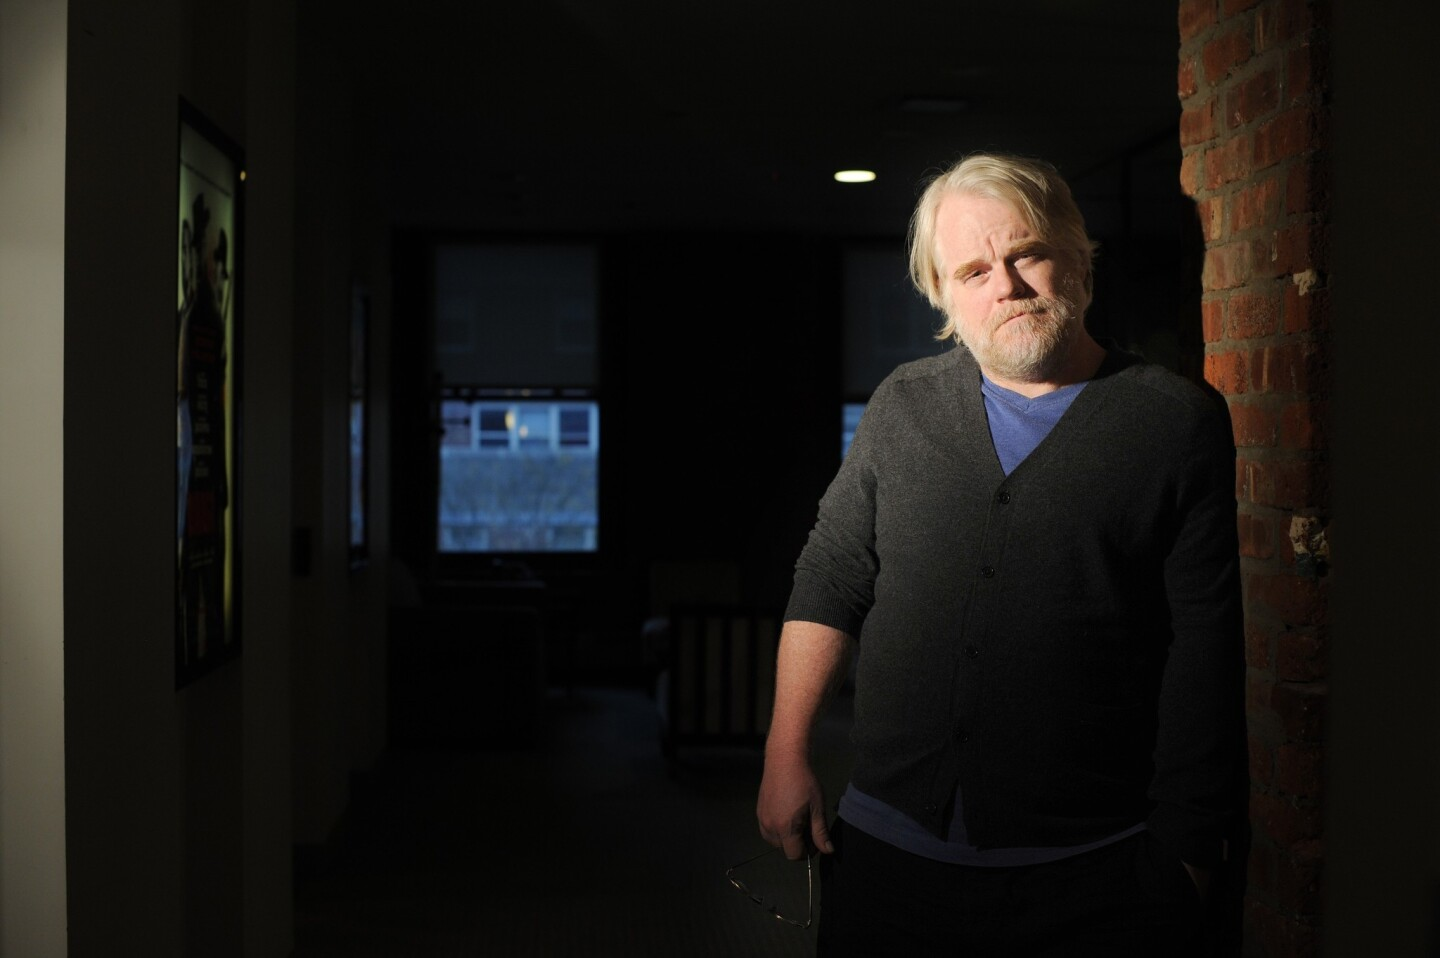 """From the Hoffman family: """"We are devastated by the loss of our beloved Phil and appreciate the outpouring of love and support we have received from everyone. This is a tragic and sudden loss and we ask that you respect our privacy during this time of grieving. Please keep Phil in your thoughts and prayers."""""""